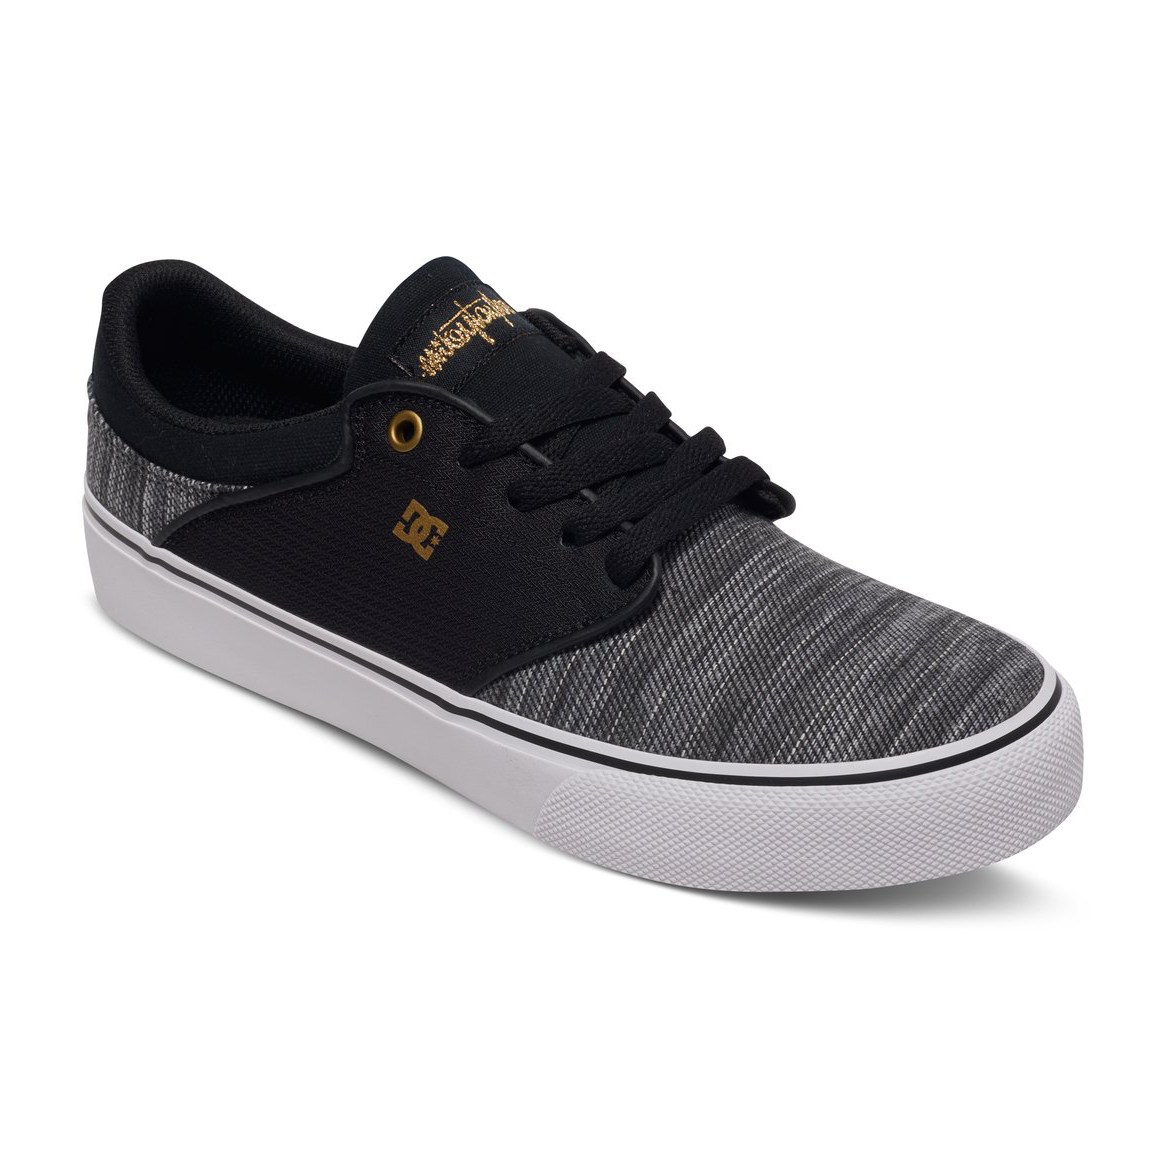 DC Mikey Taylor Vulc TX SE Mens Shoes